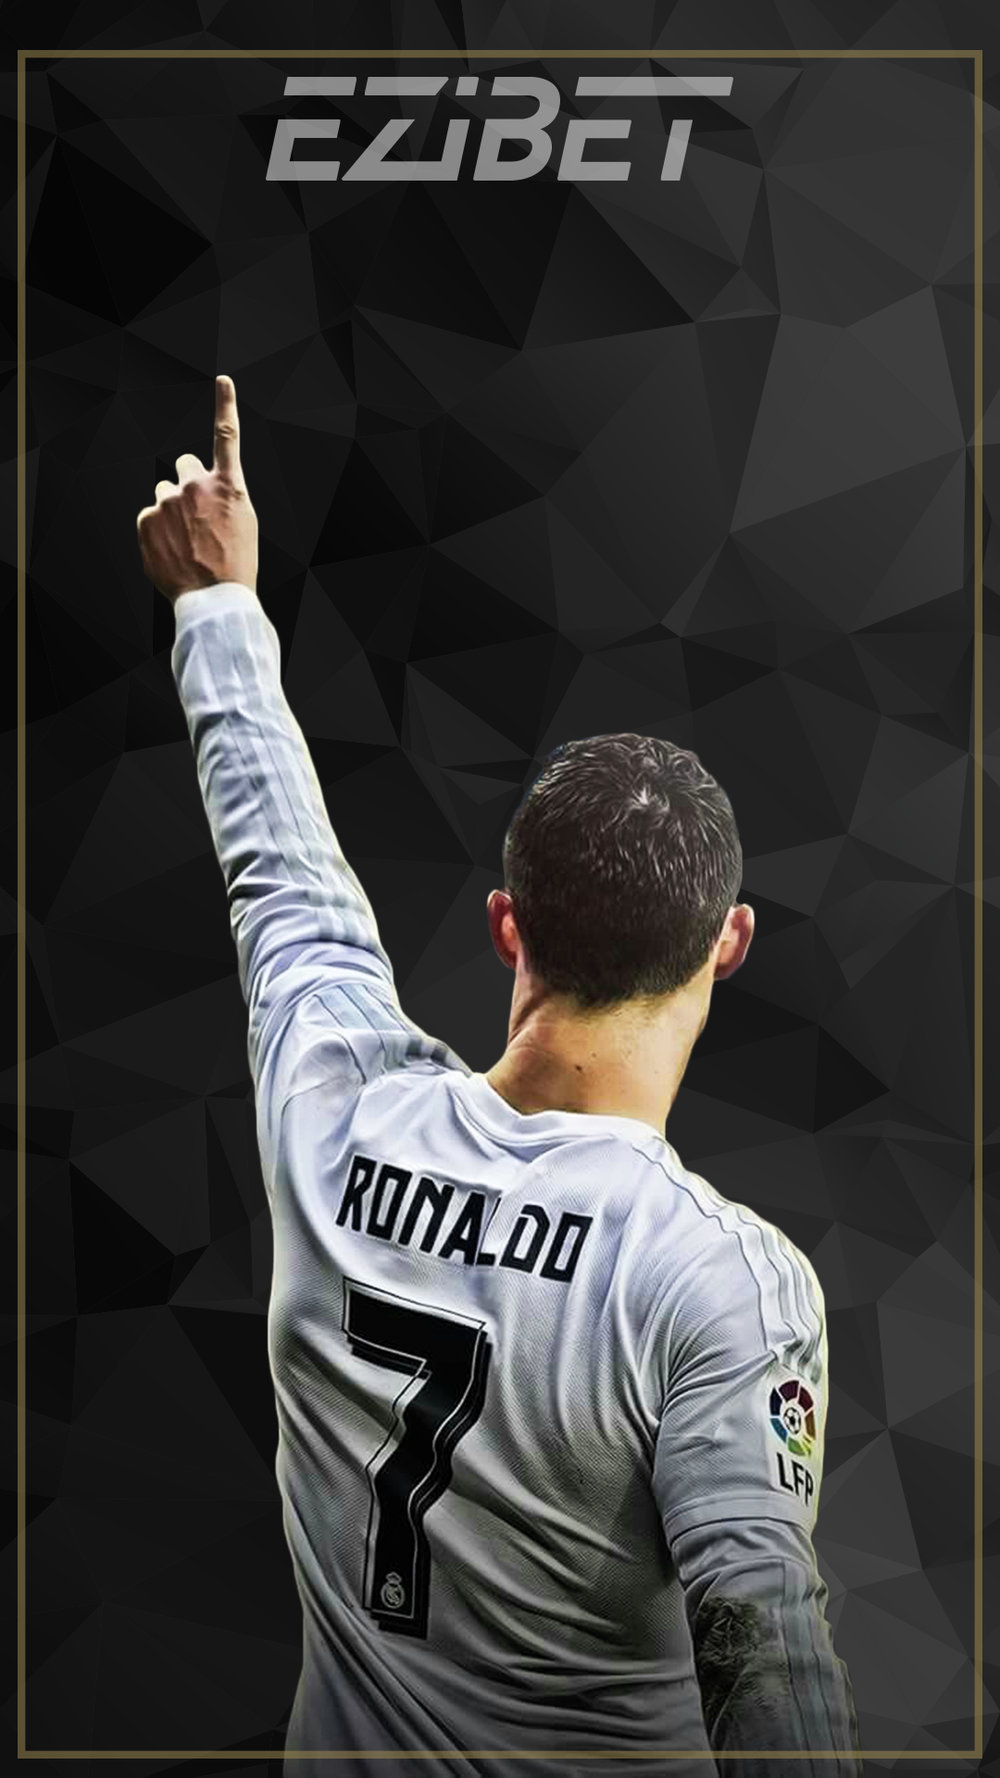 Ronaldo Mobile wallpaper.jpg